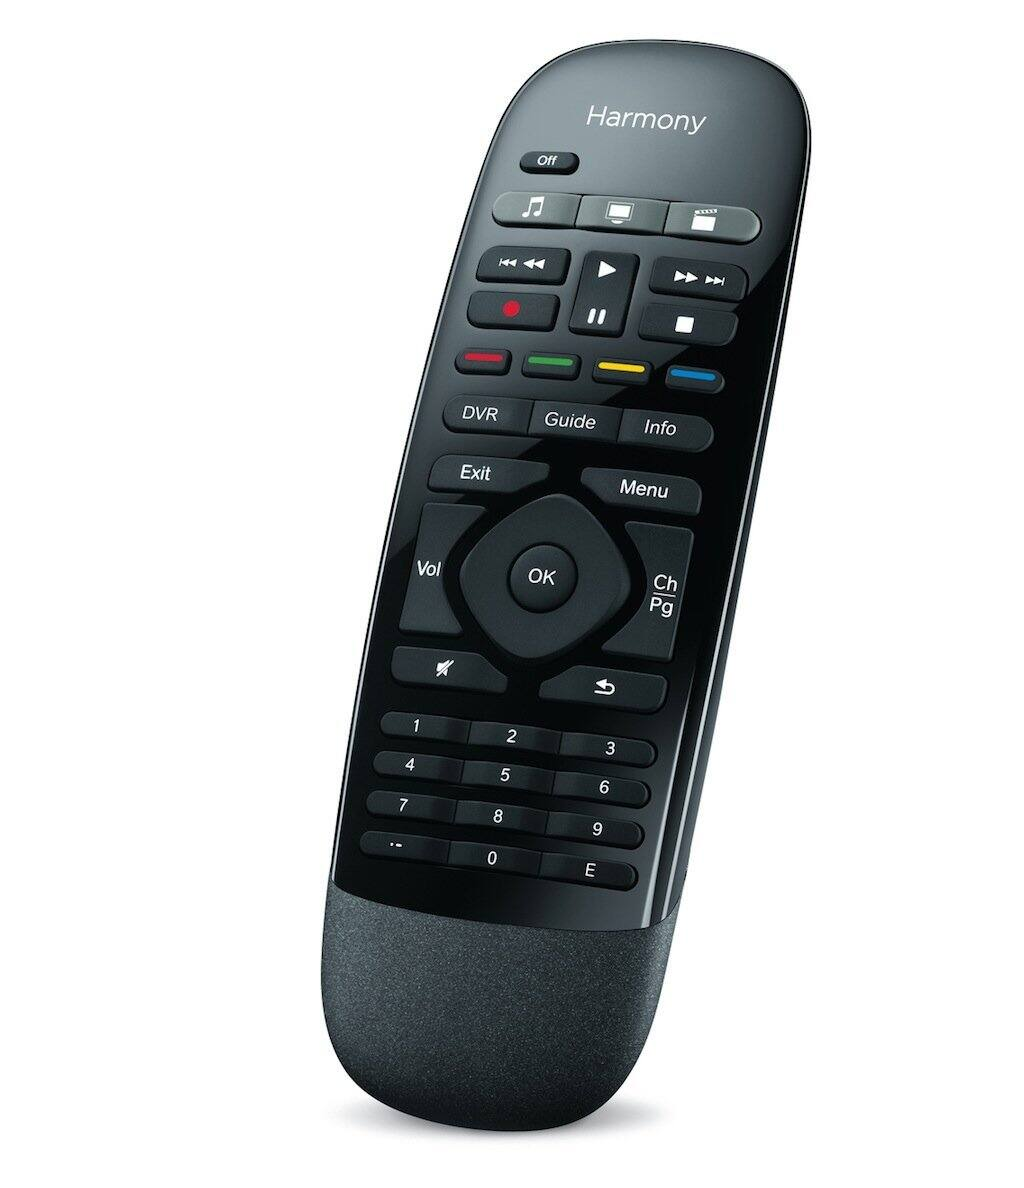 Logitech Harmony Smart Control w/ Smartphone App & Simple Remote (Black) $74.99 + Free Shipping